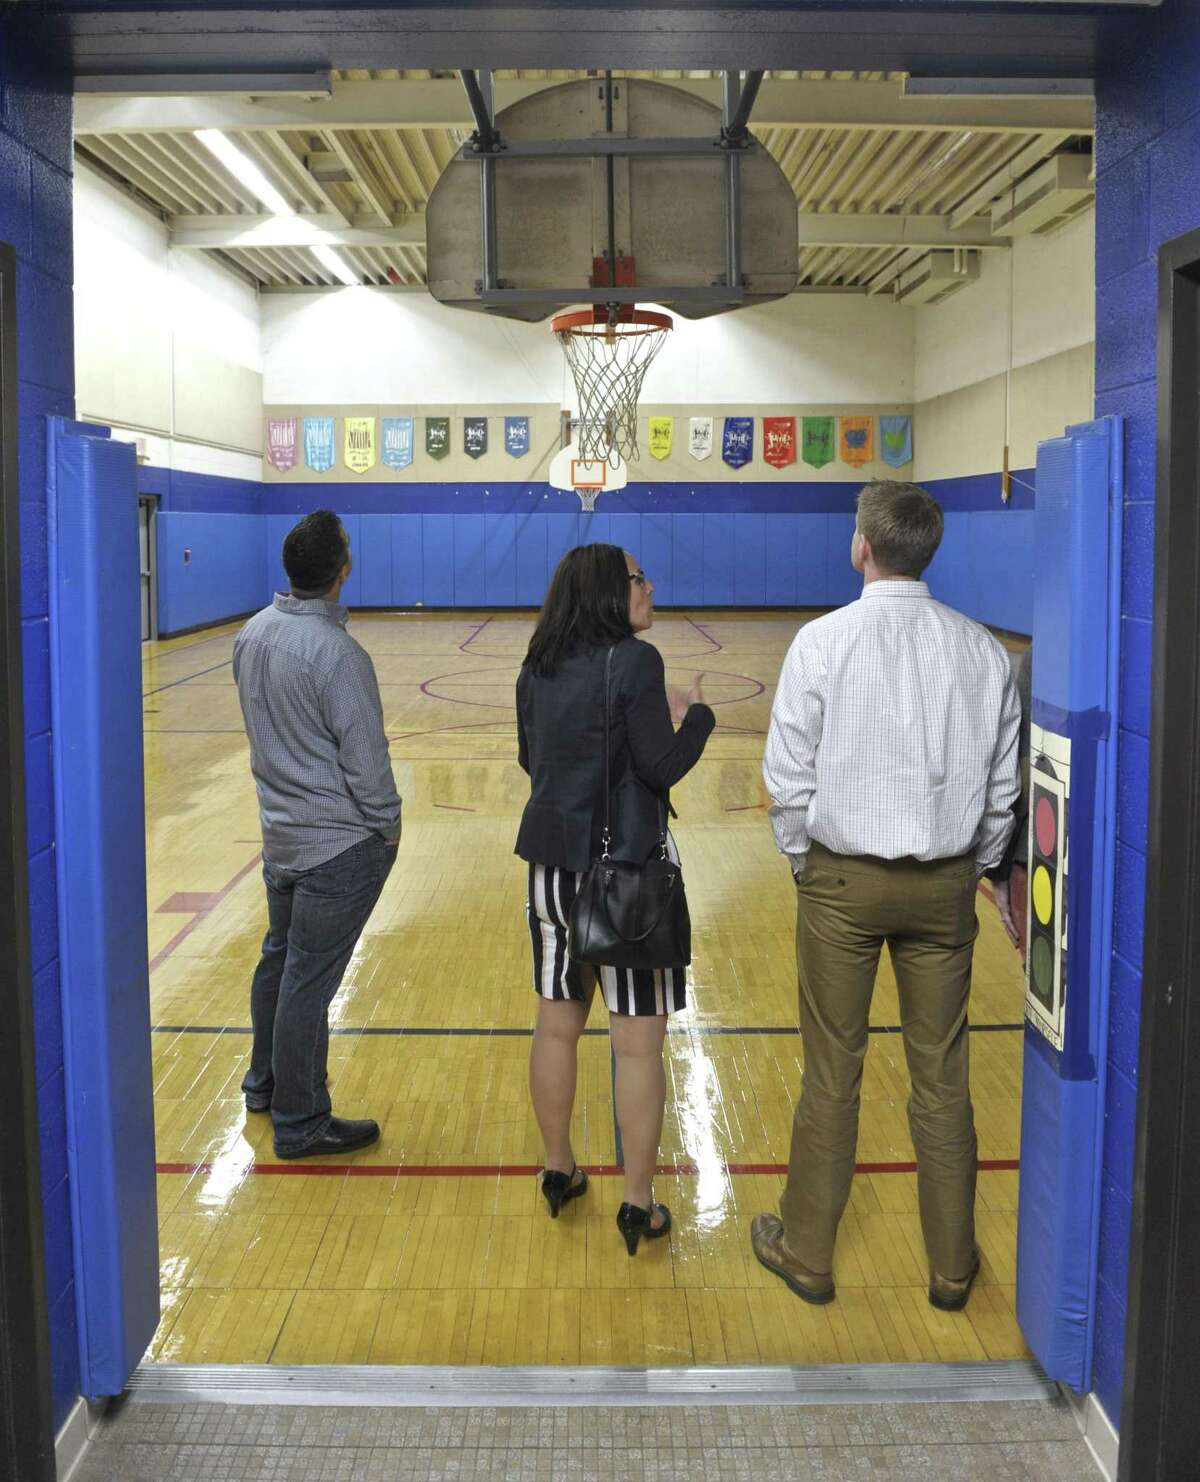 Kevin McCloskey, left and Jim Sveda, right, listen to Bethel Superintendent of Schools Christine Carver during a tour of Rockwell School. Wednesday, October 5, 2016, in Bethel, Conn. The Sveda and McCluskey have children in the school.